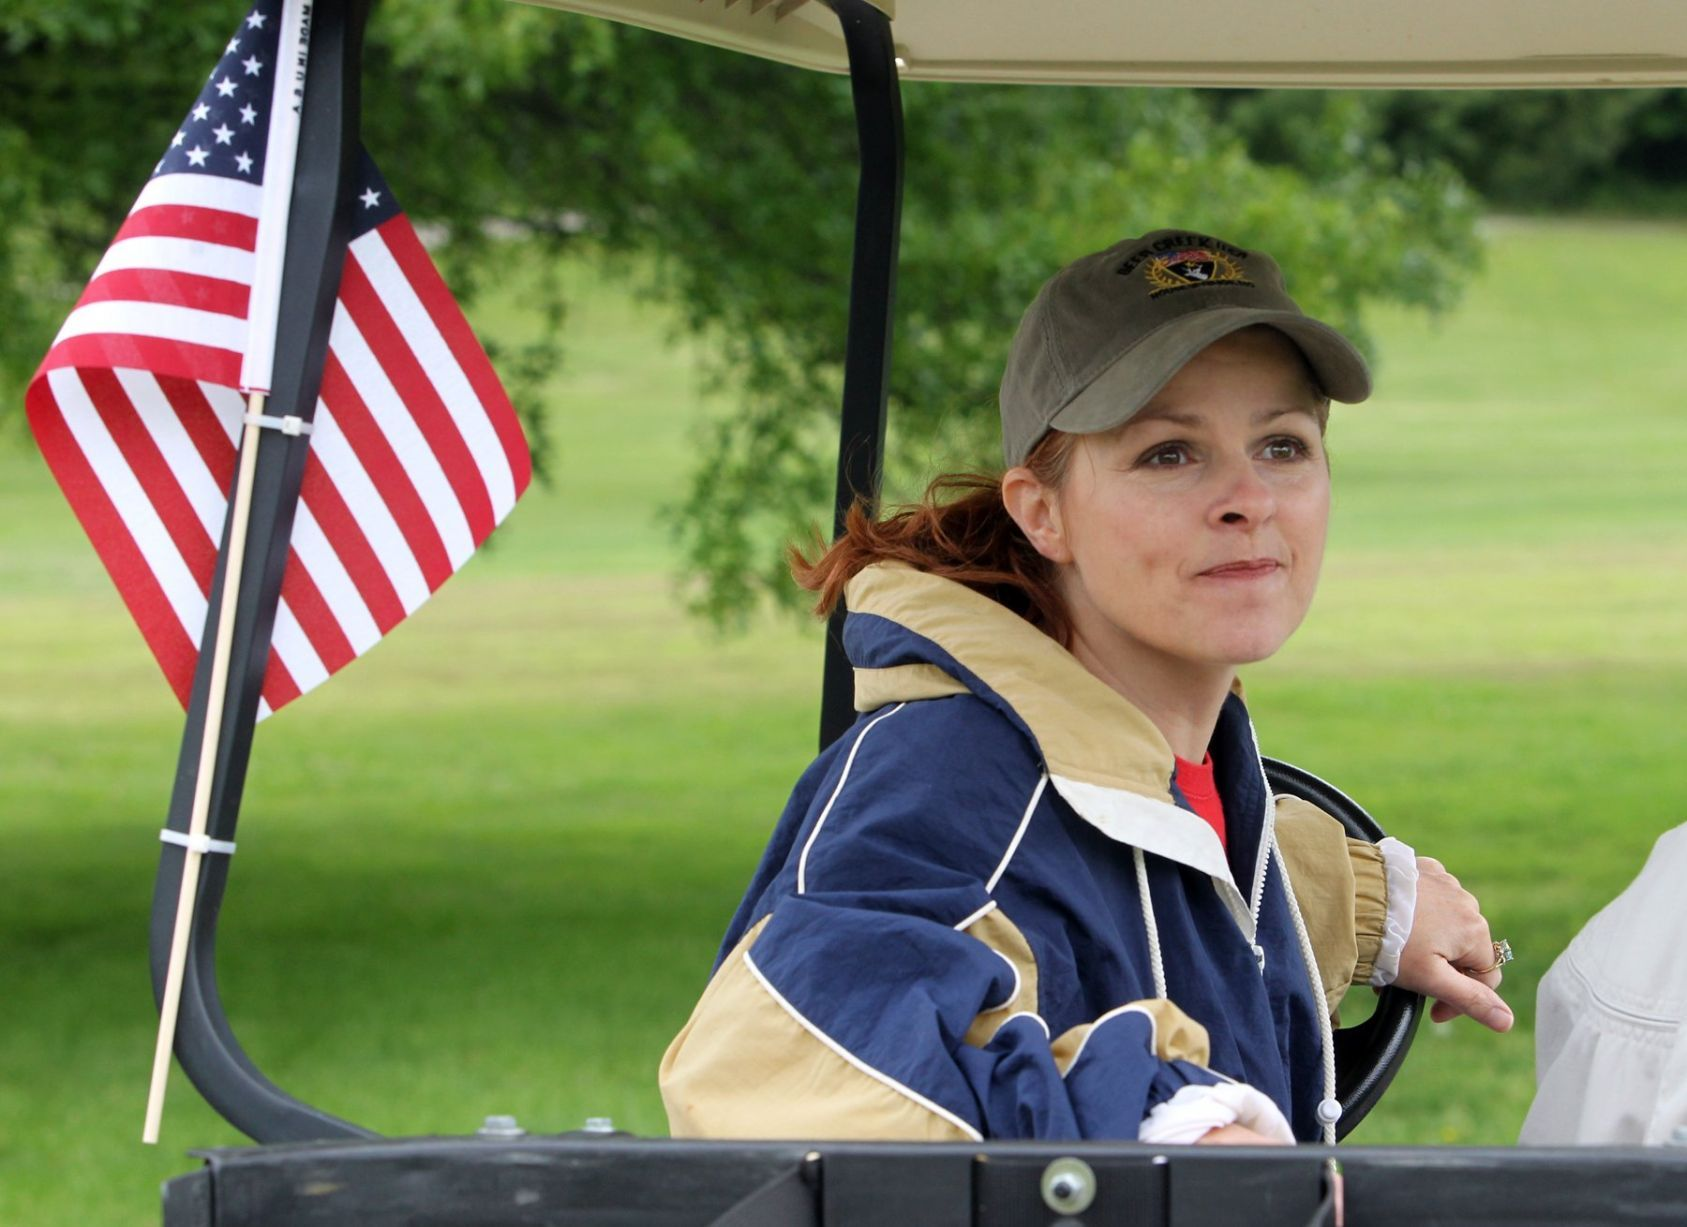 Her vision turned a golf course into a place of honor